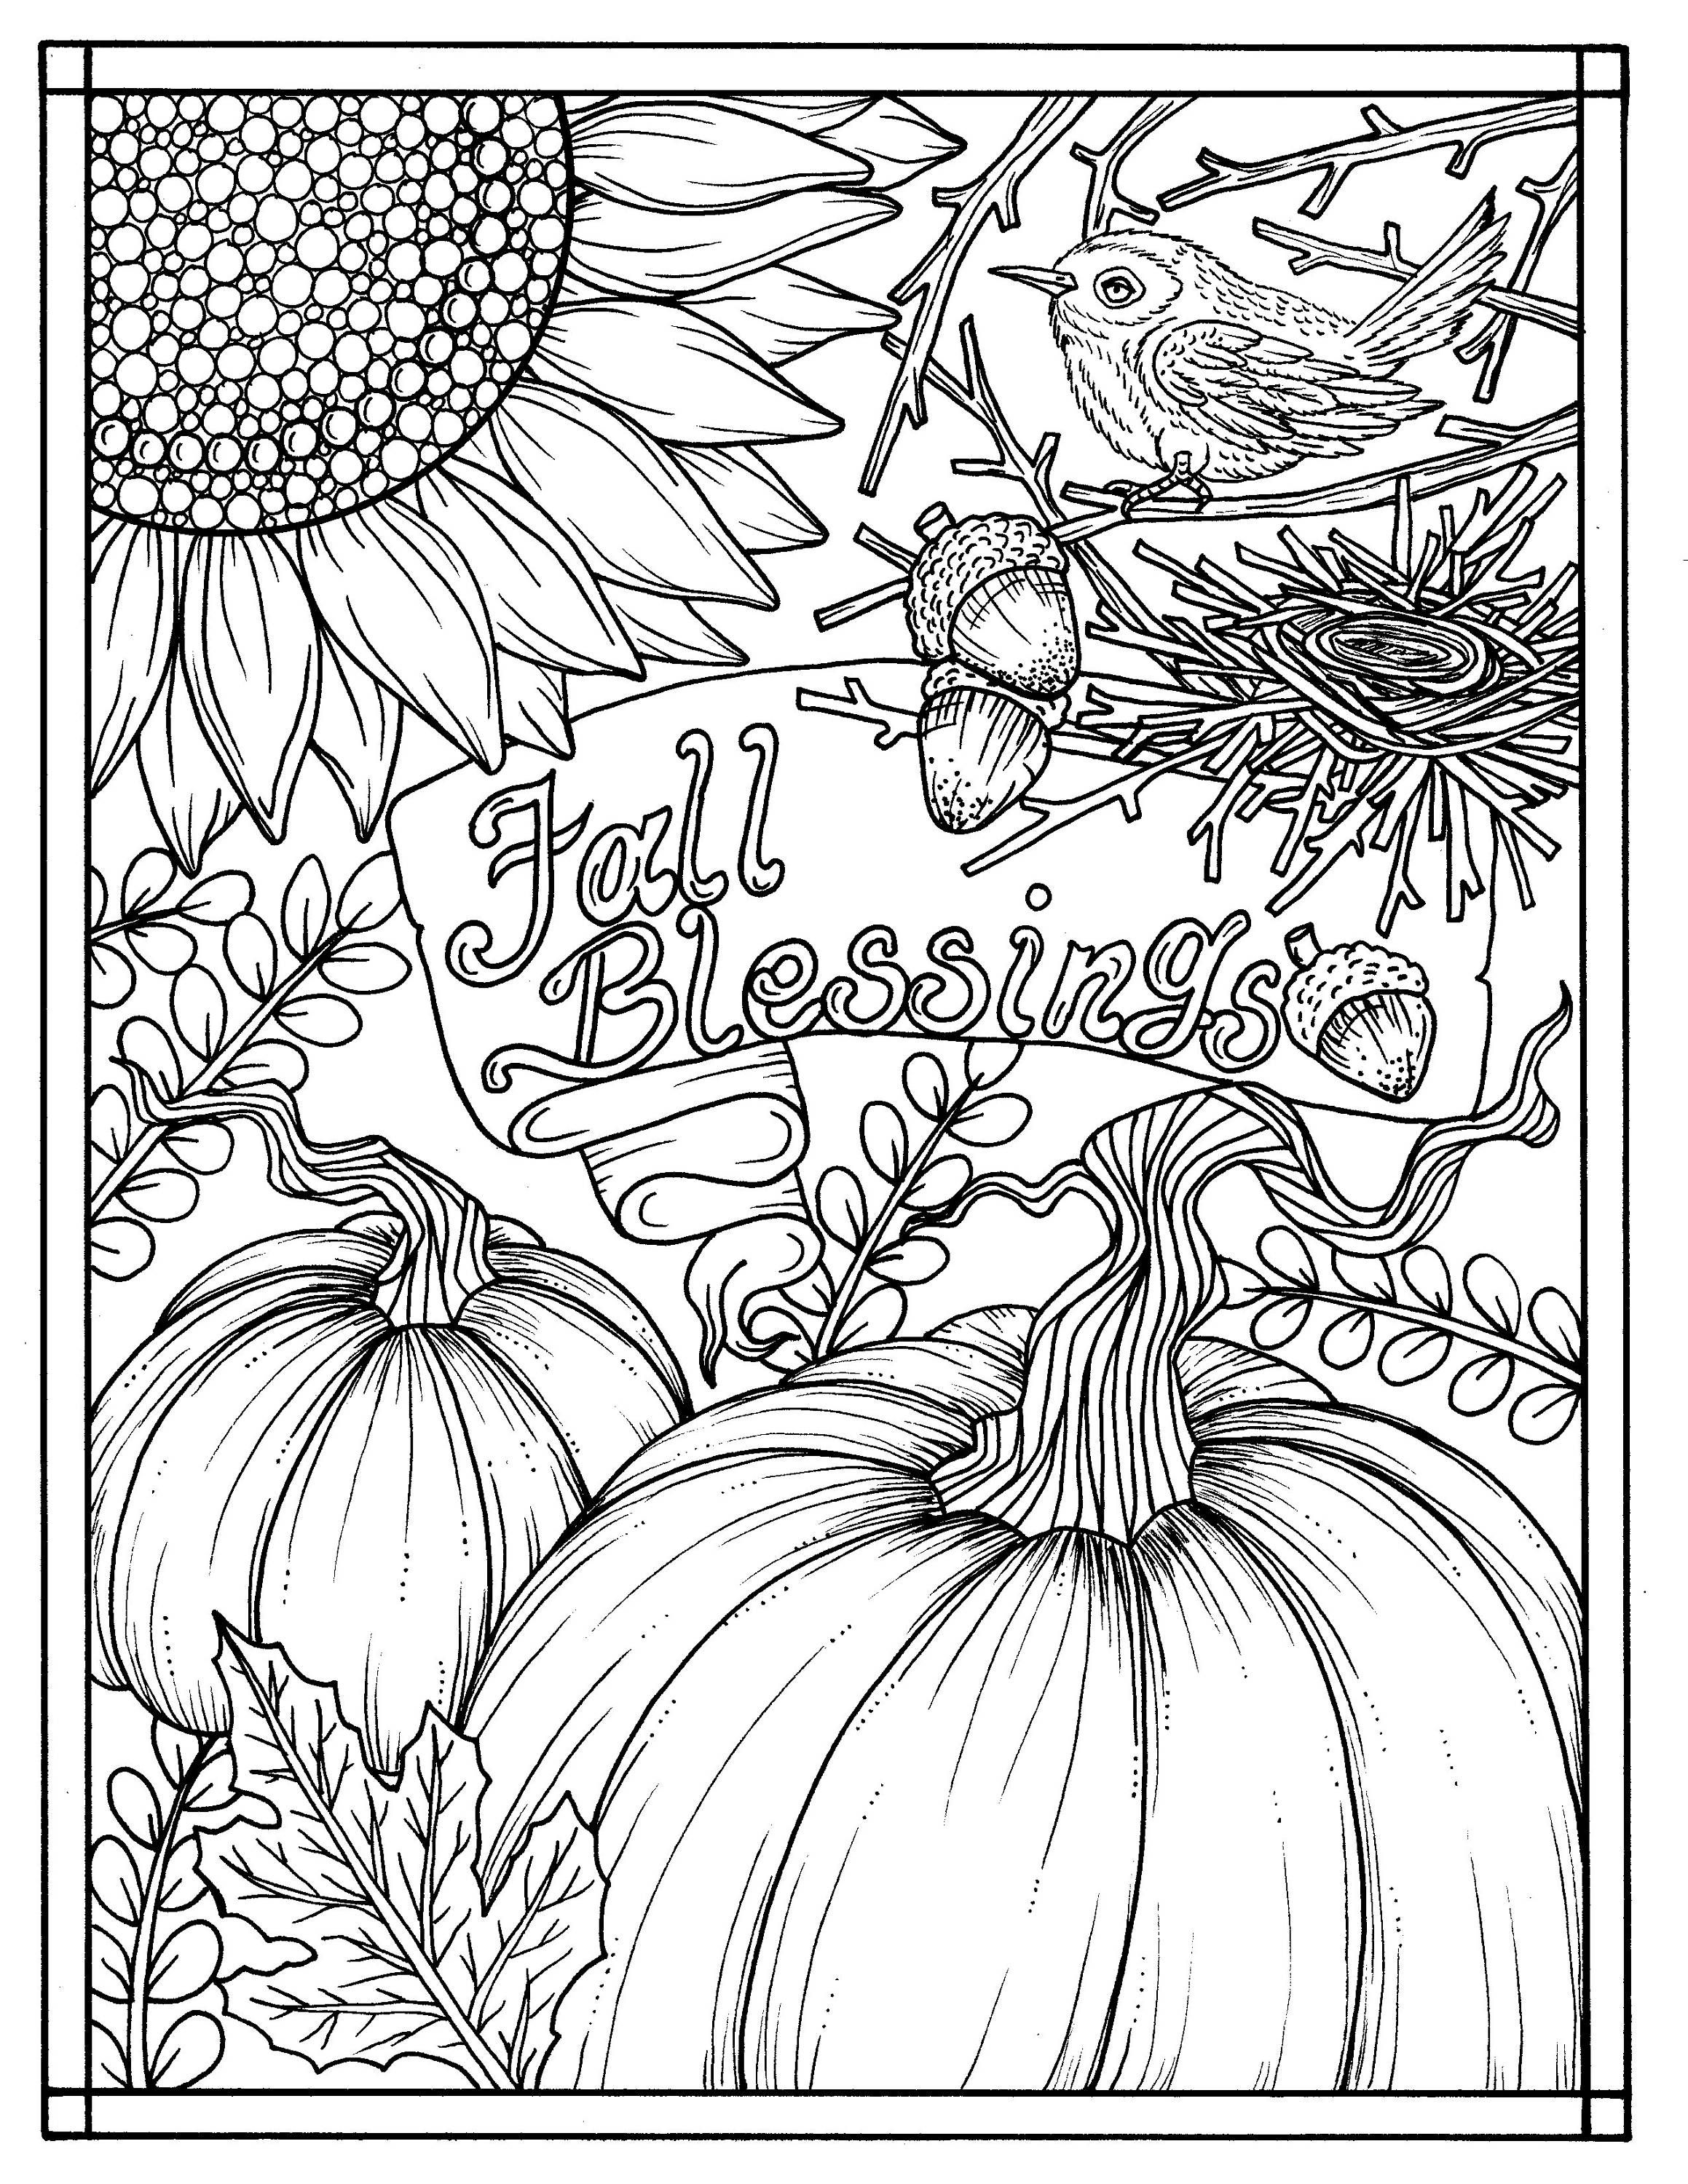 Download Fall Blessings Instant Digital Coloring Page